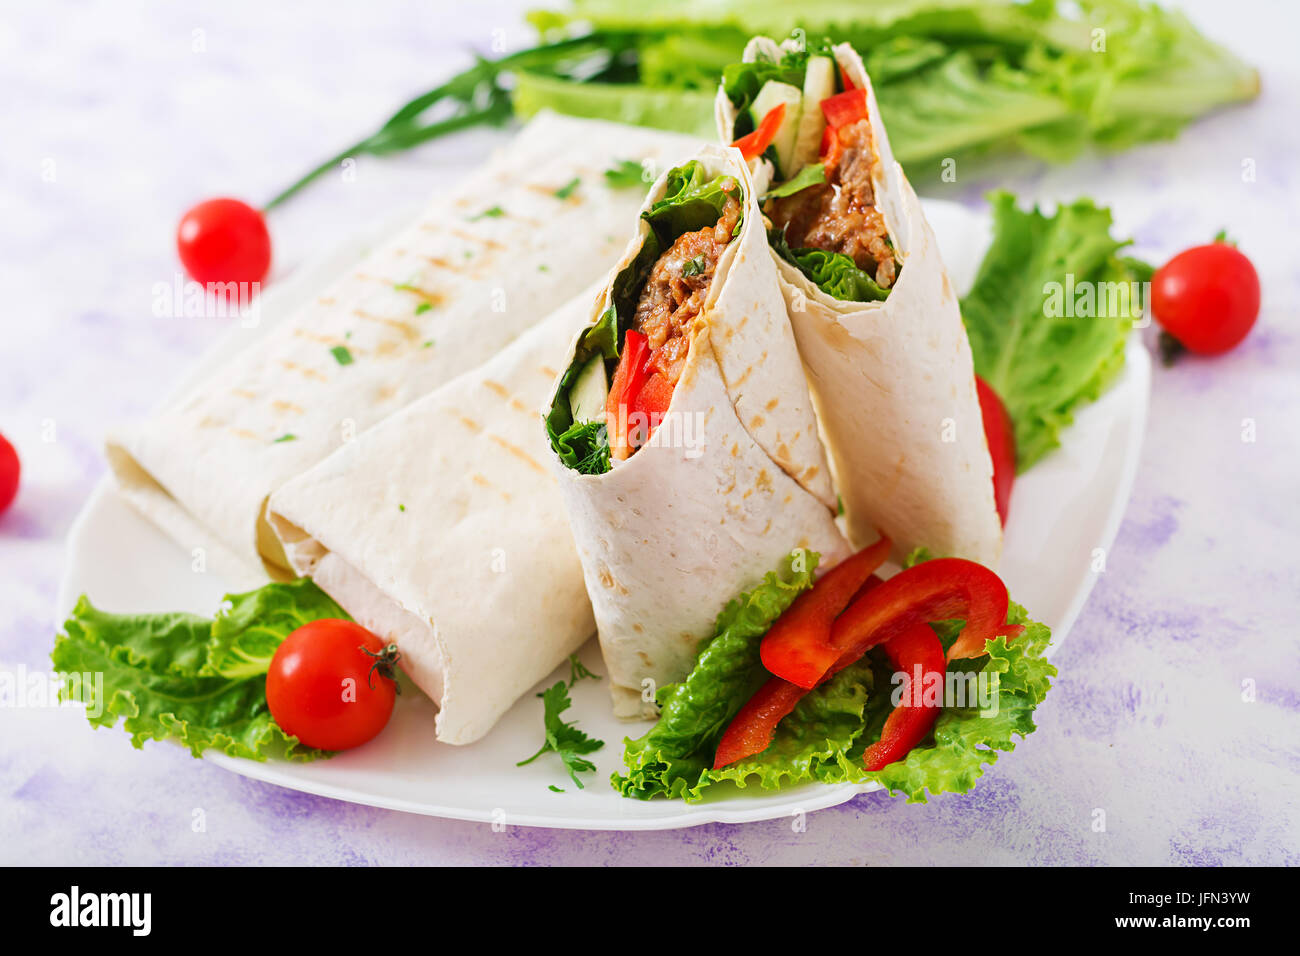 Burritos wraps with minced beef and vegetables on a light background. - Stock Image